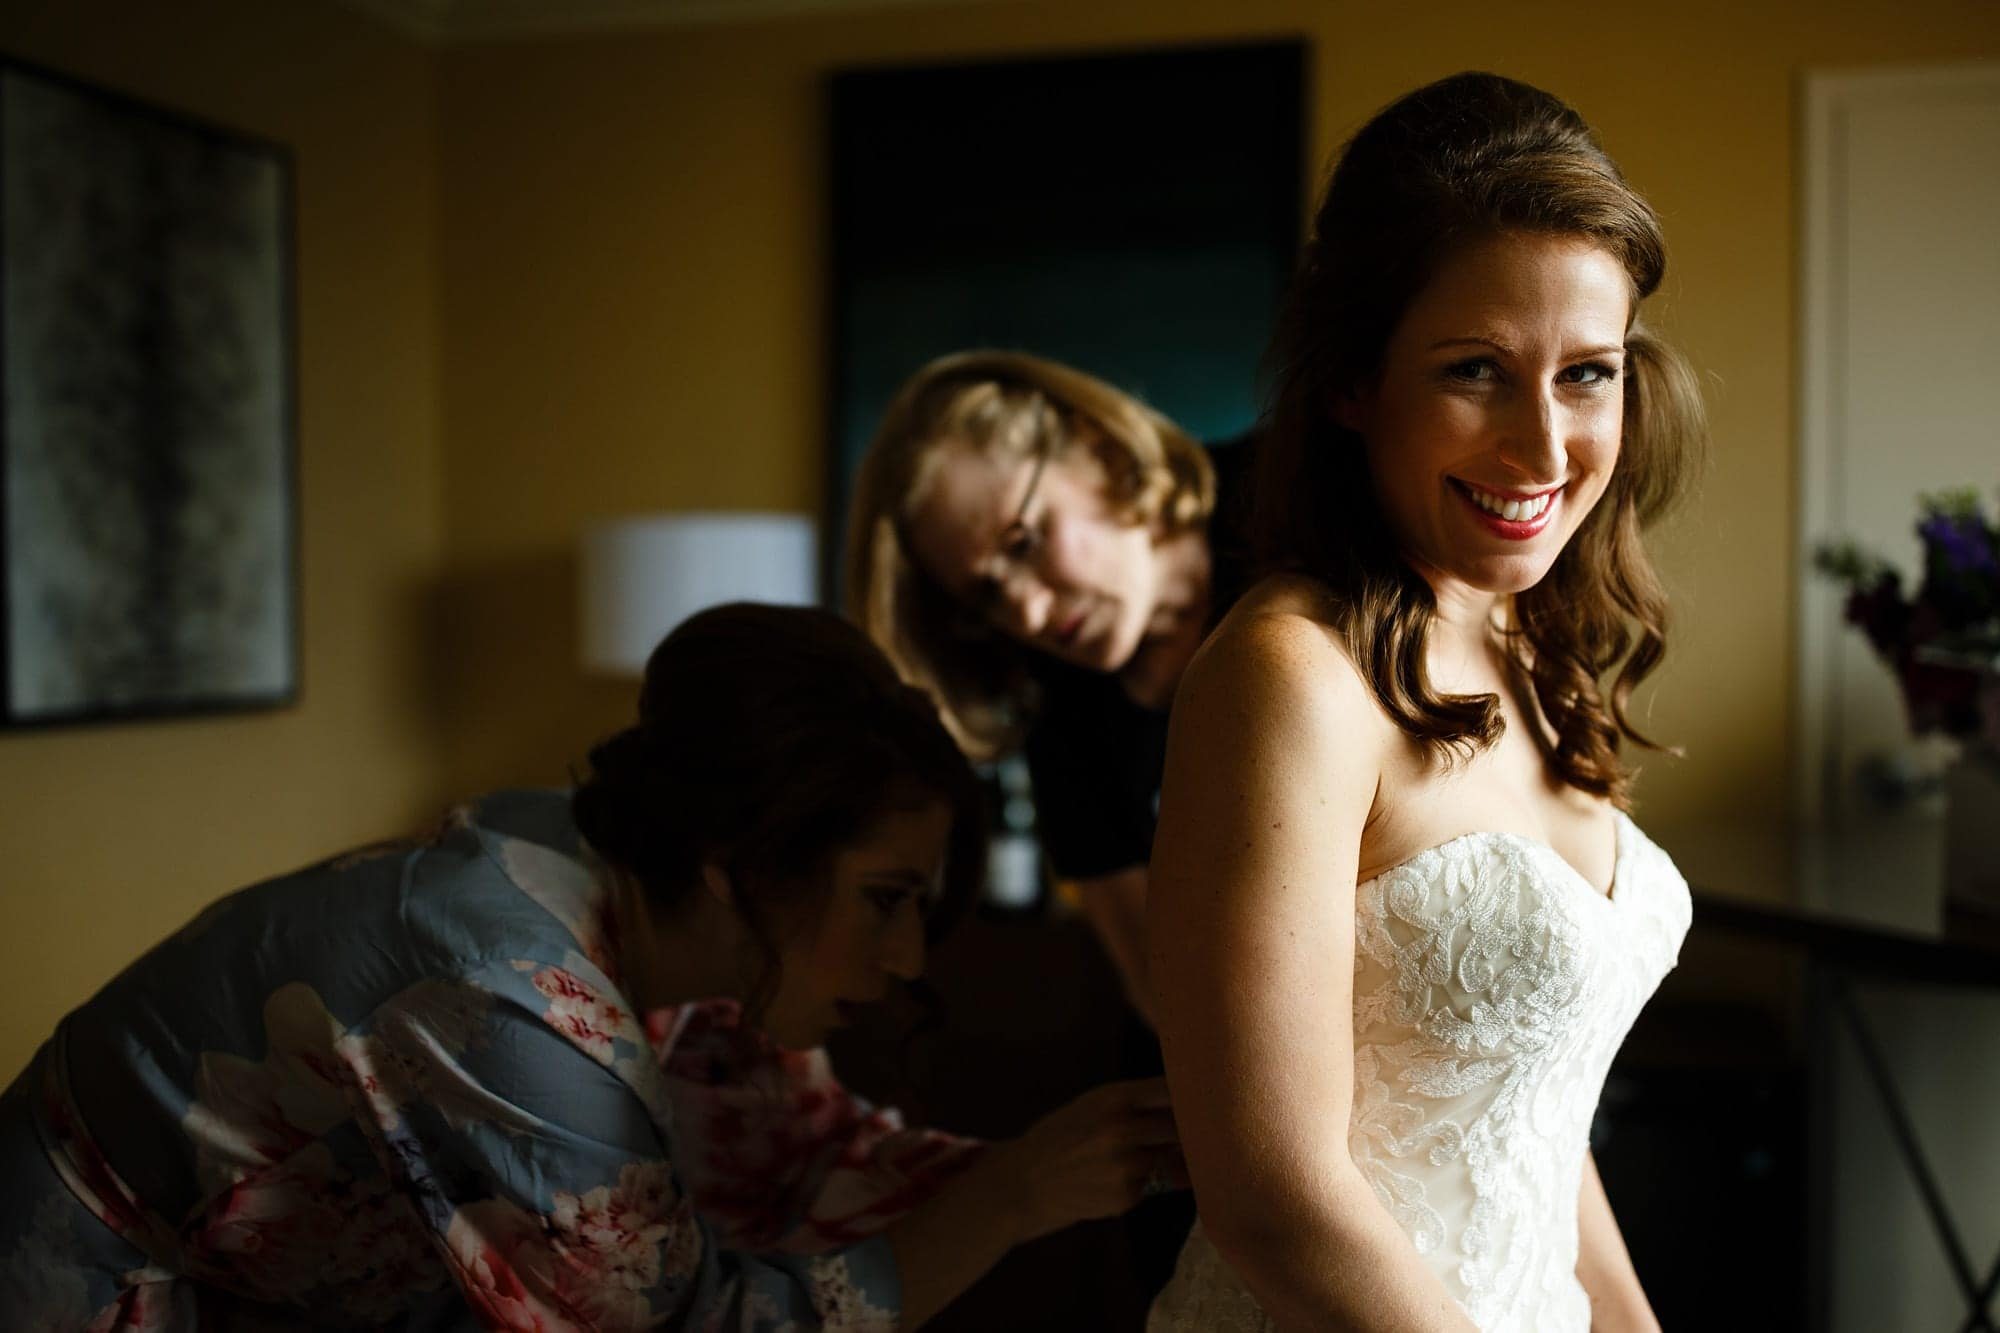 A bride has her dress adjusted by bridesmaids